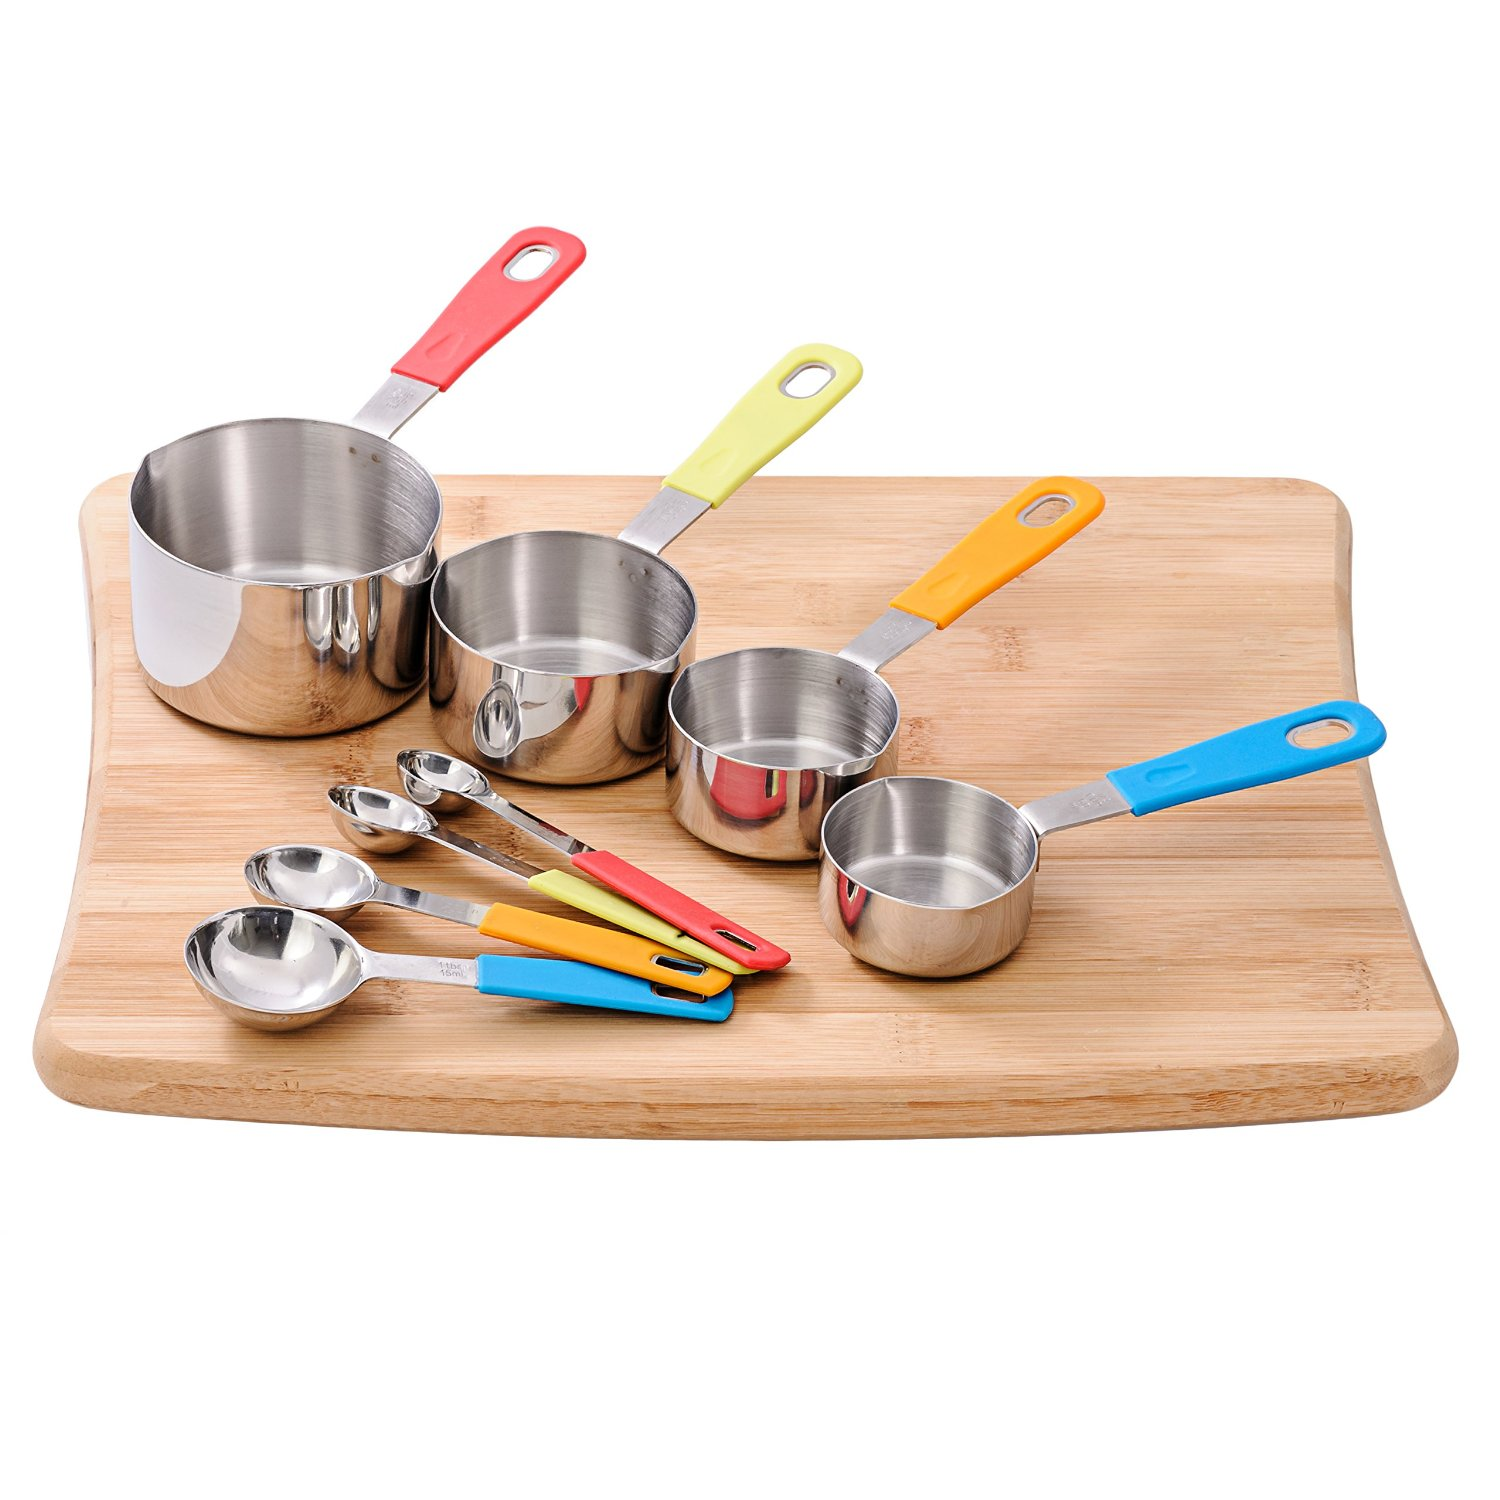 popular product reviews by amy kukpo 8 peice measuring cups and spoons set review. Black Bedroom Furniture Sets. Home Design Ideas